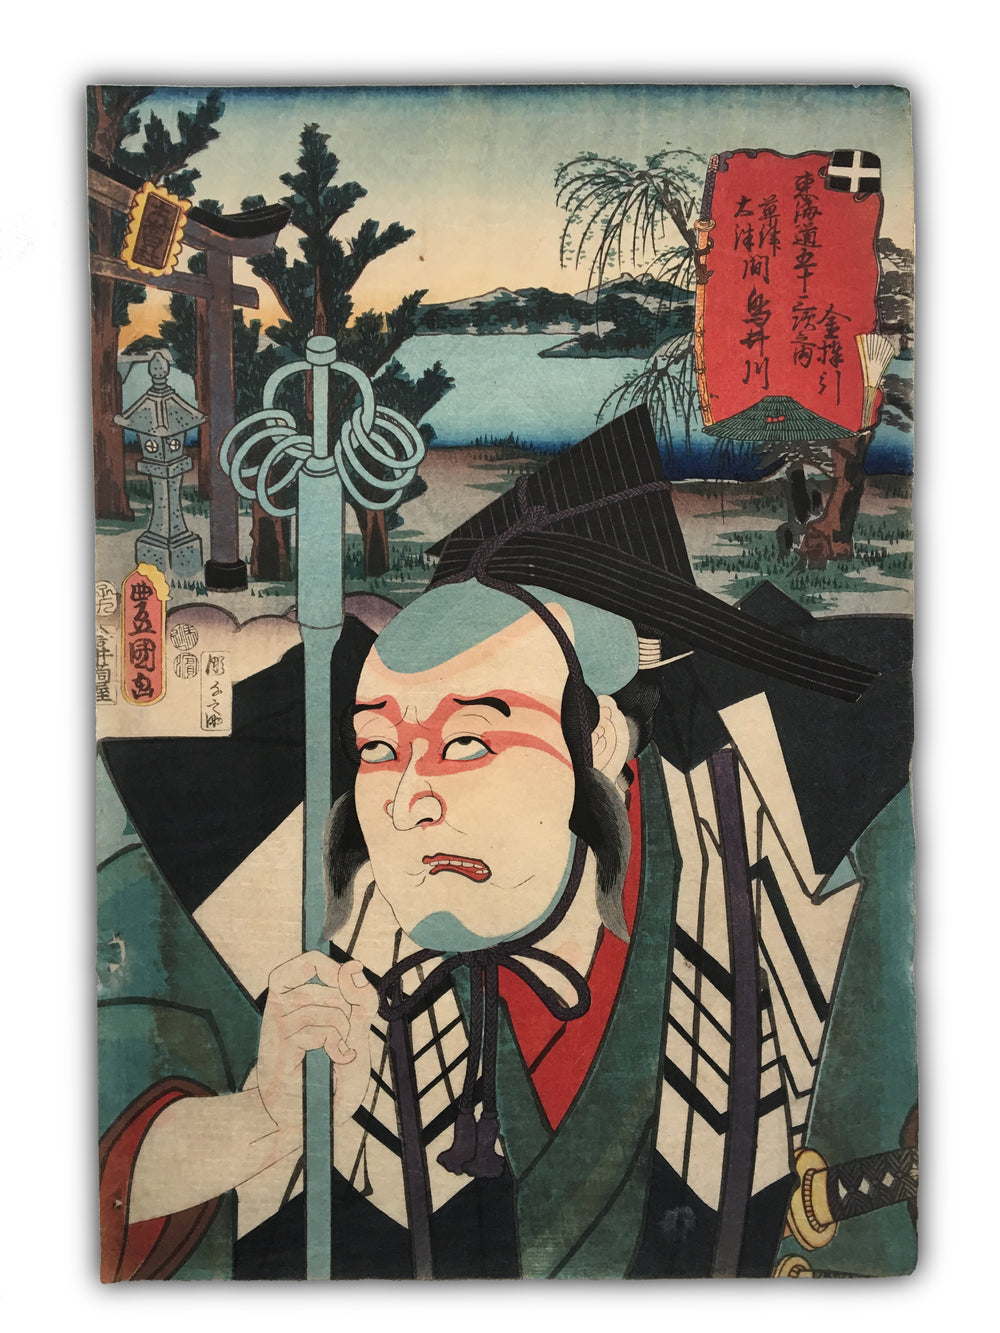 Valuable (Toyokuni I, 1852)